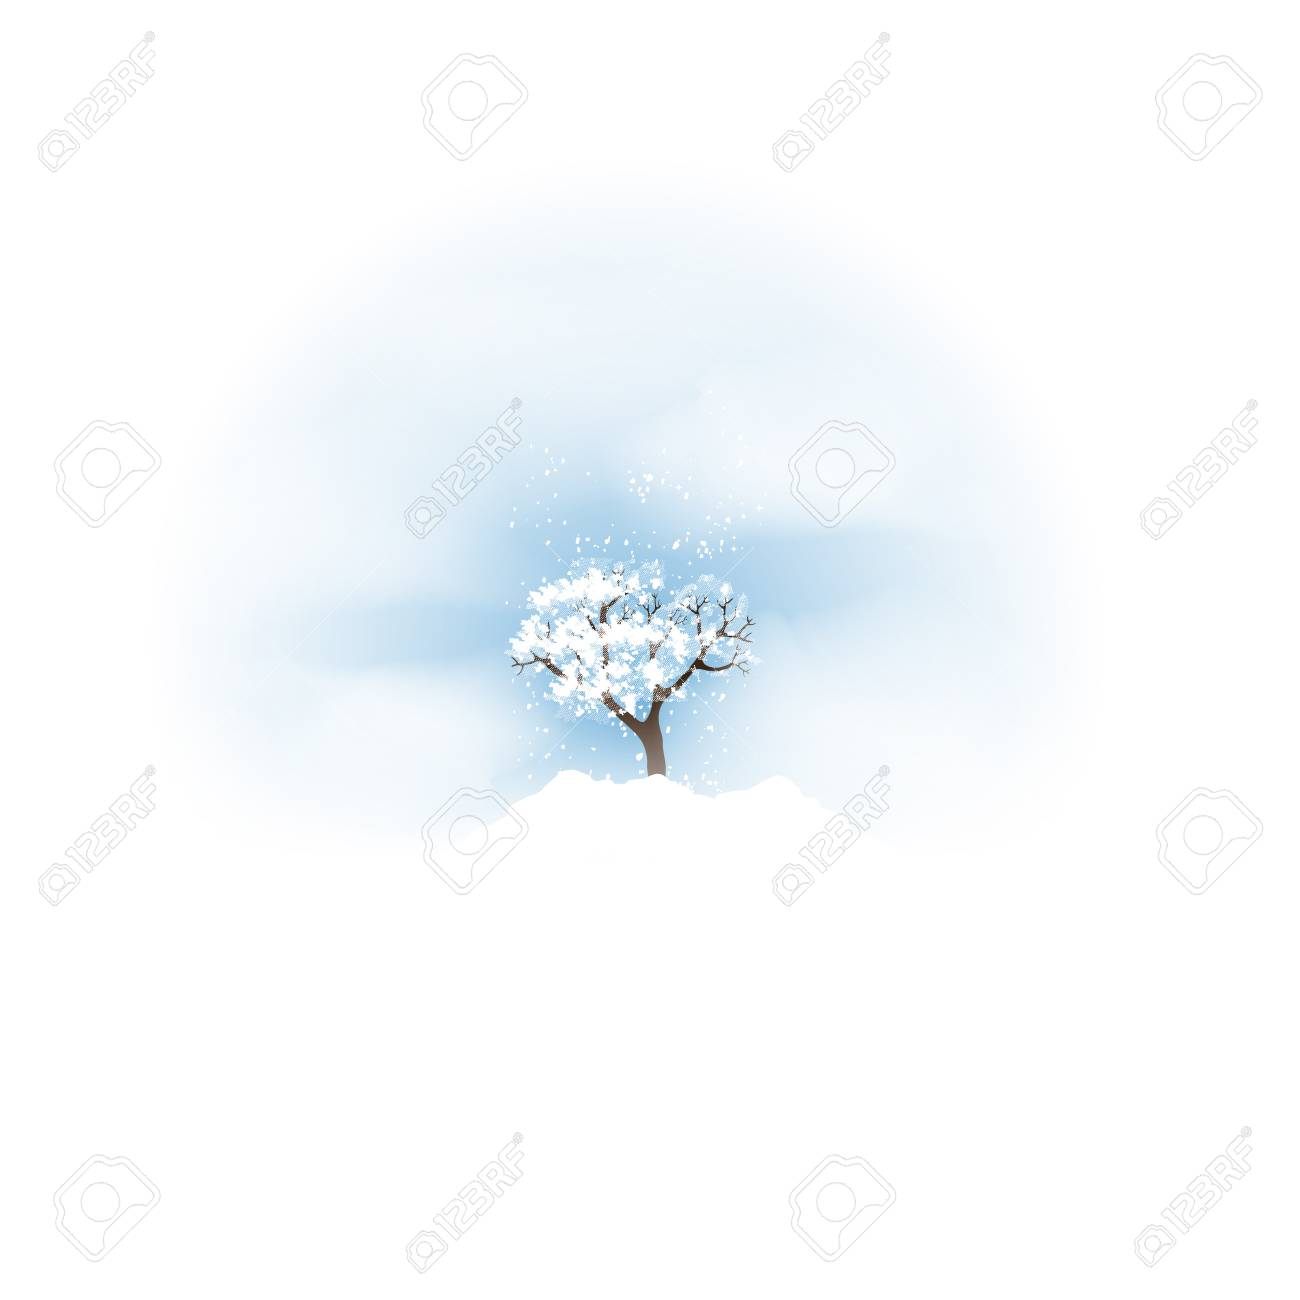 Winter with Tree and Falling Snow - Vector Illustration - 97524151